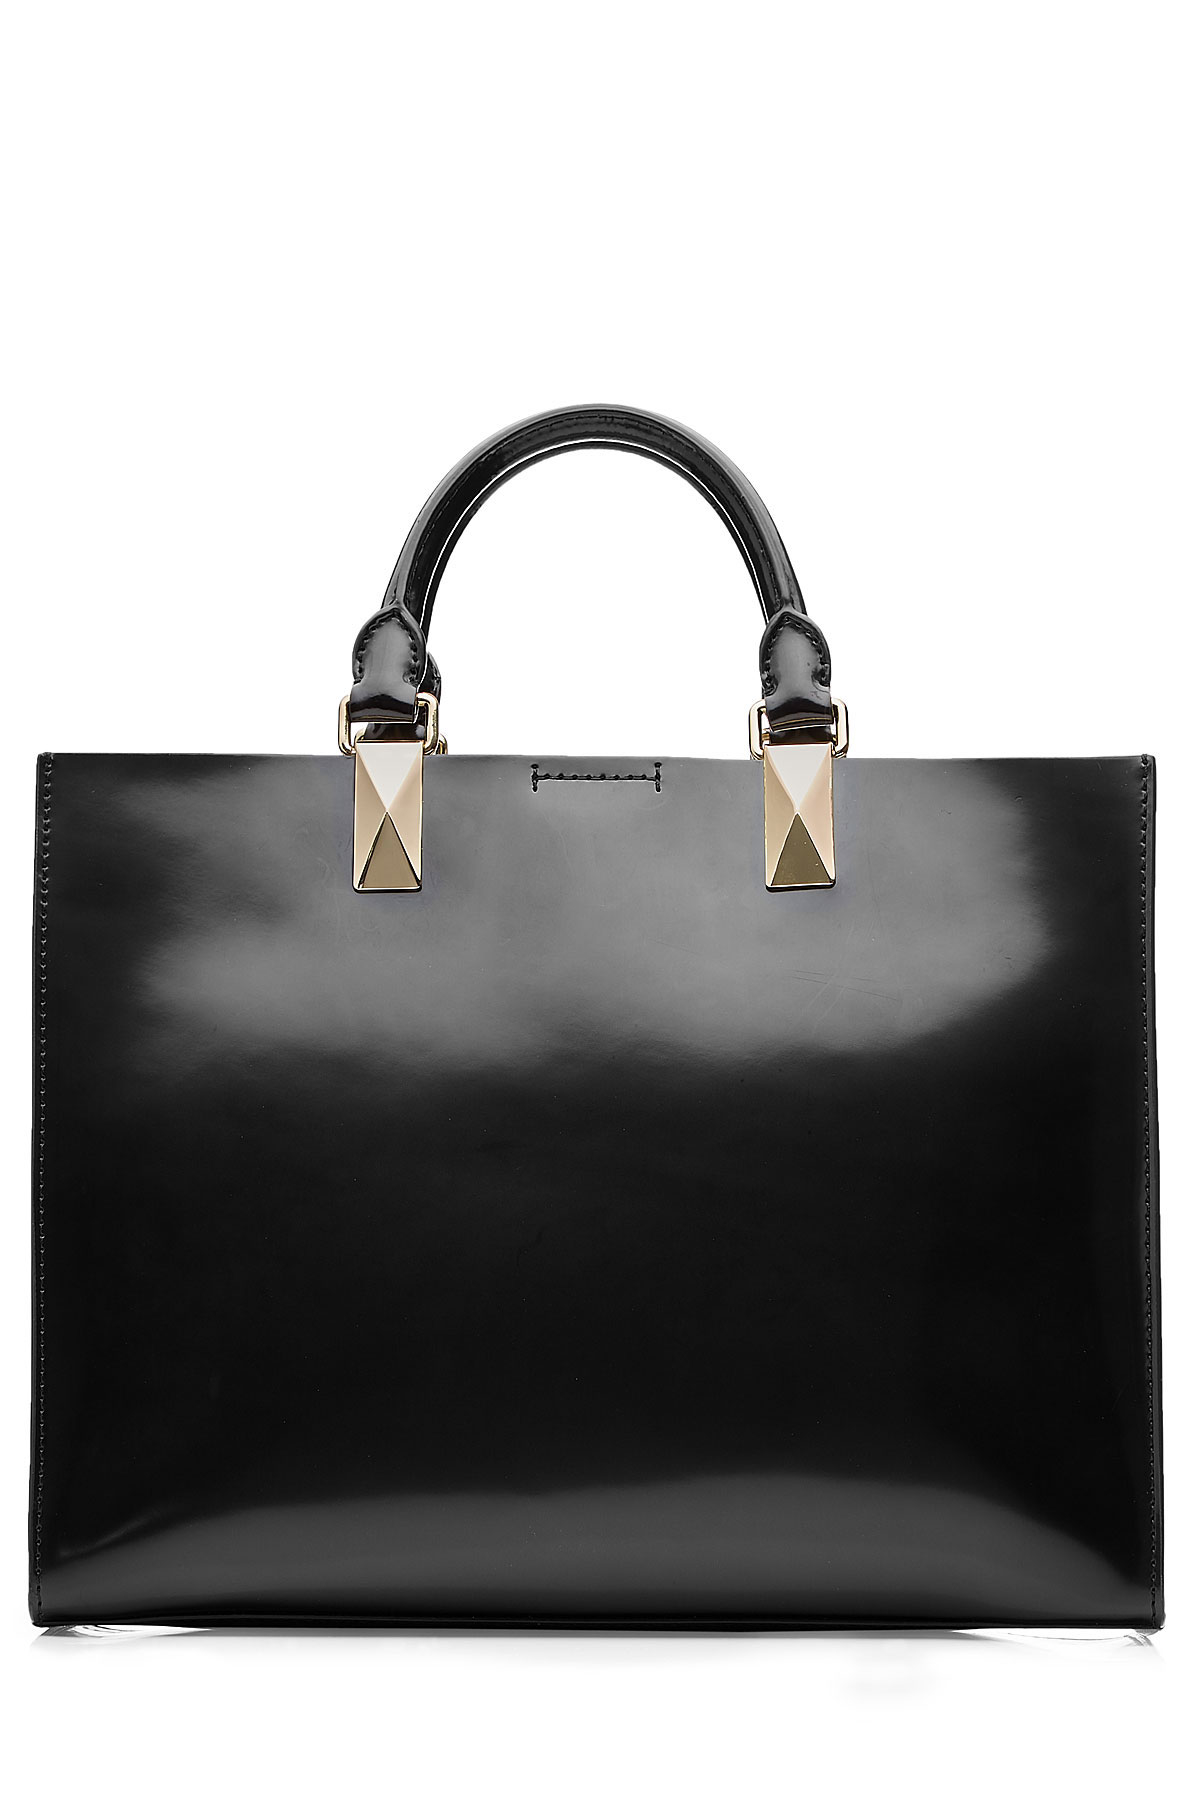 47b57995d2c2 Lyst - Karl Lagerfeld Patent Leather Tote - Black in Black